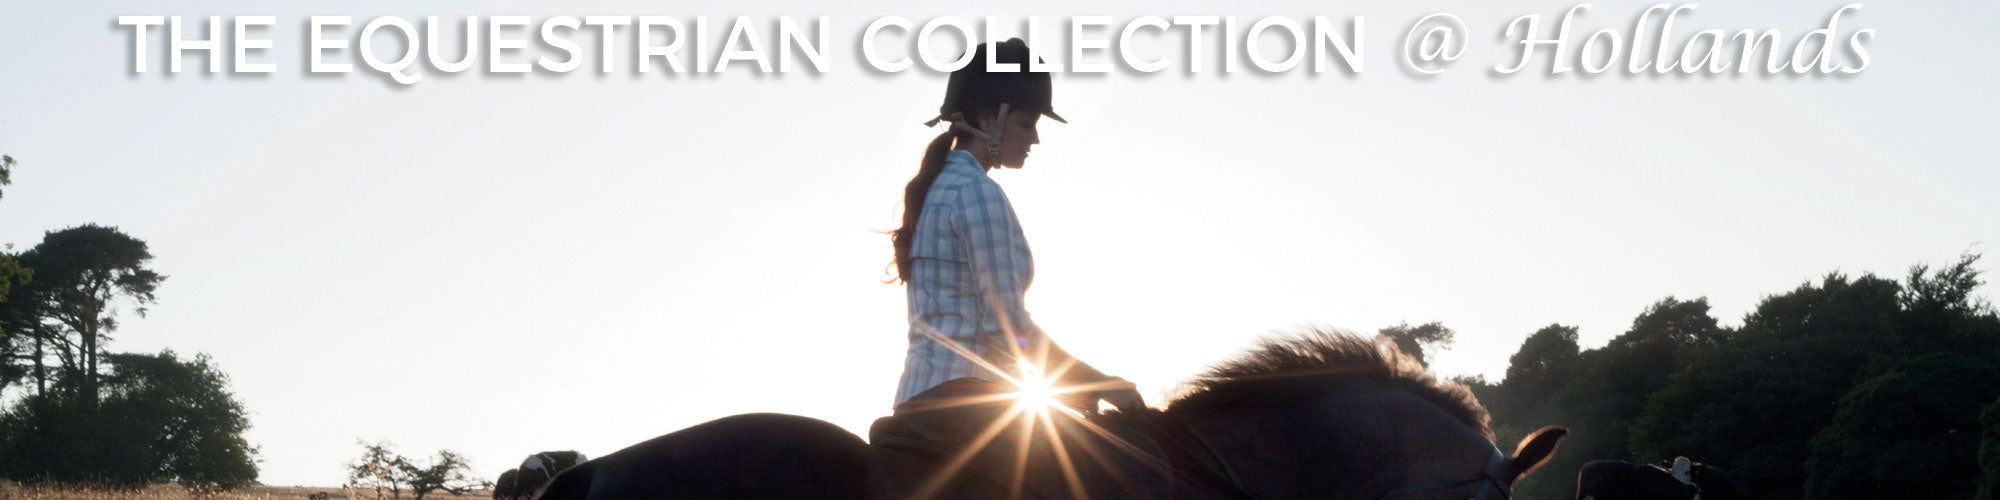 equestrian clothing at hollands country clothing